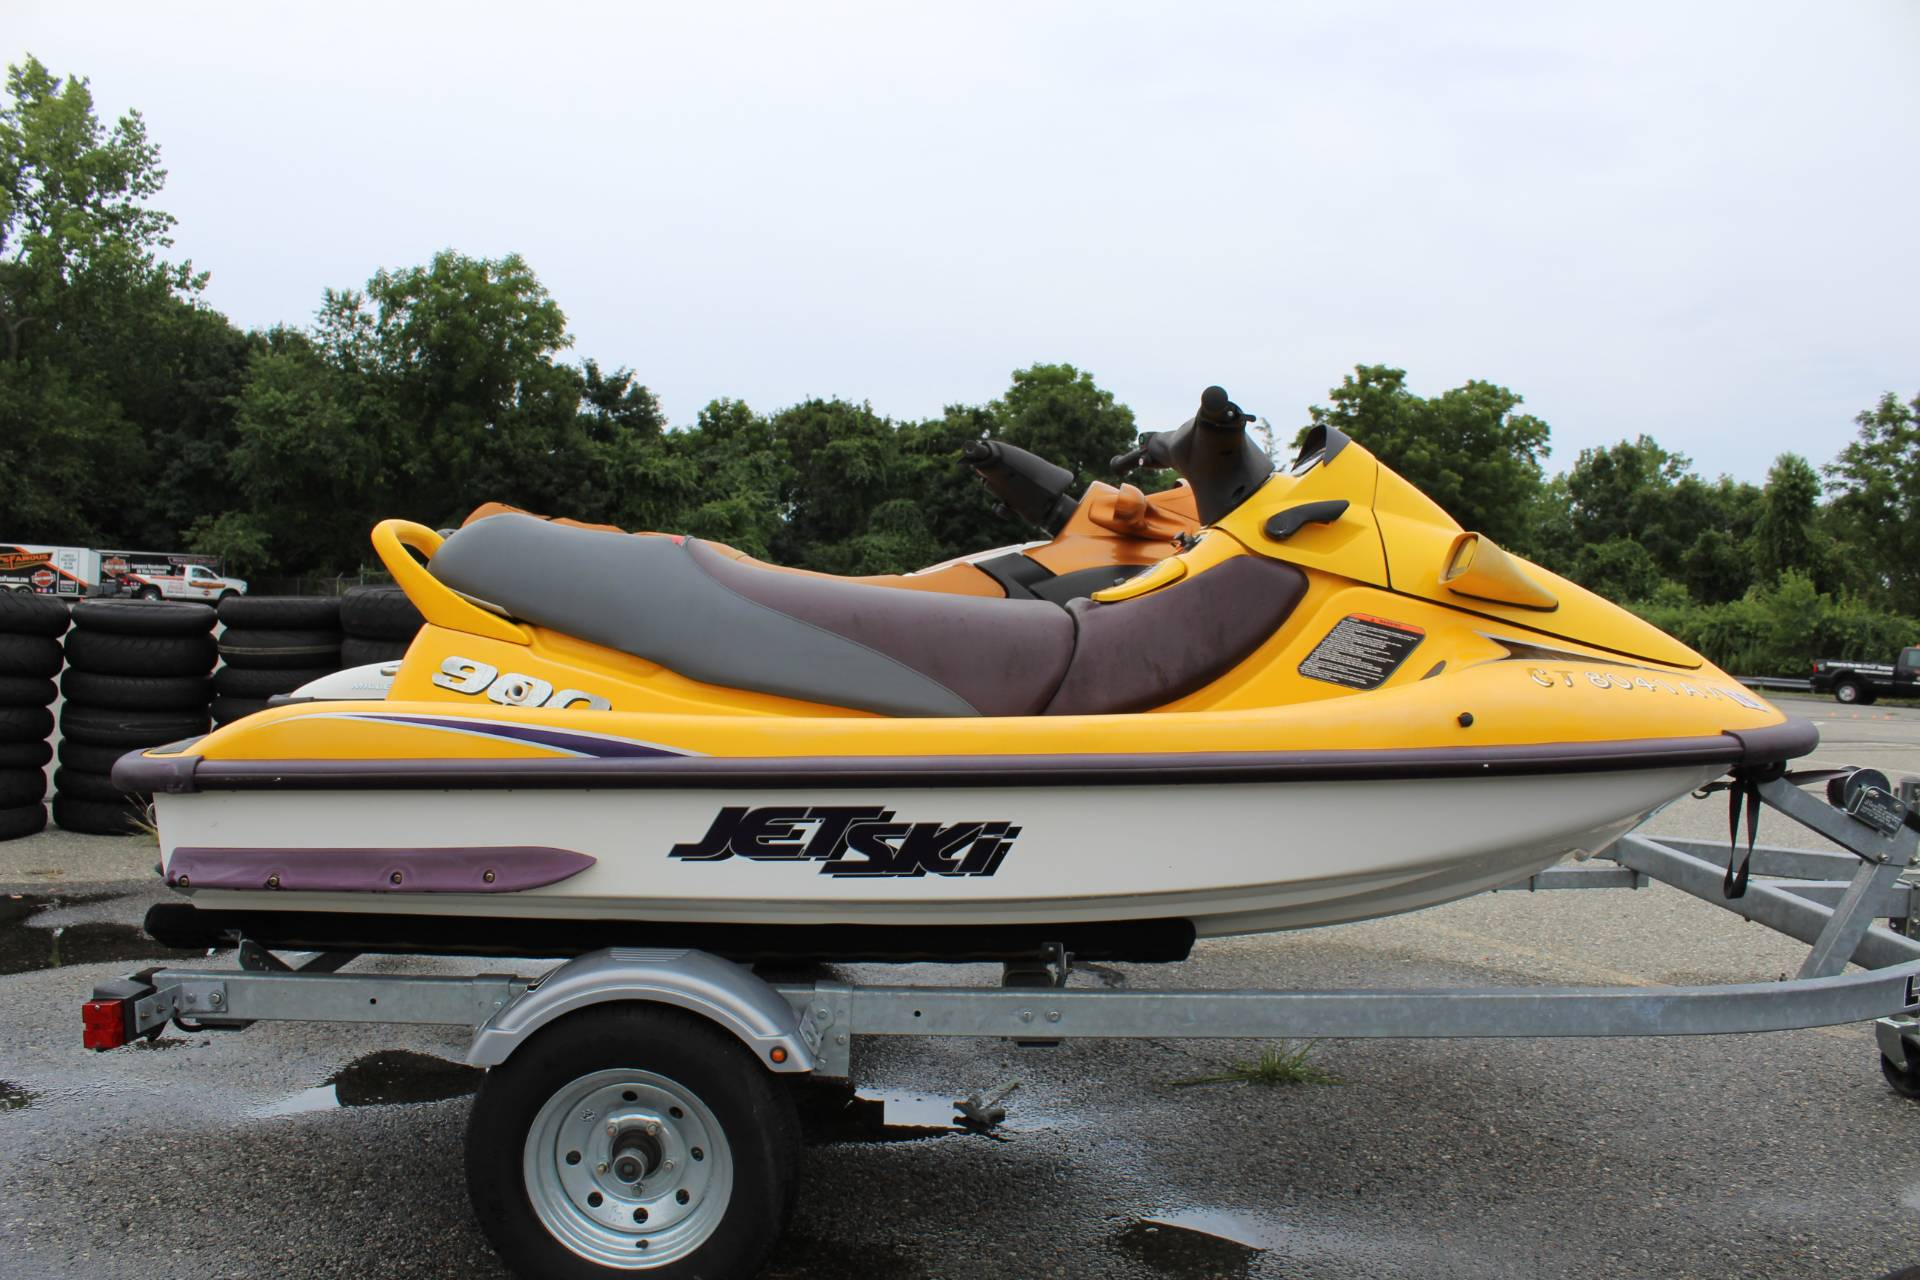 1999 Kawasaki Jet Ski 900 STX Watercraft in New London, Connecticut - Photo 1